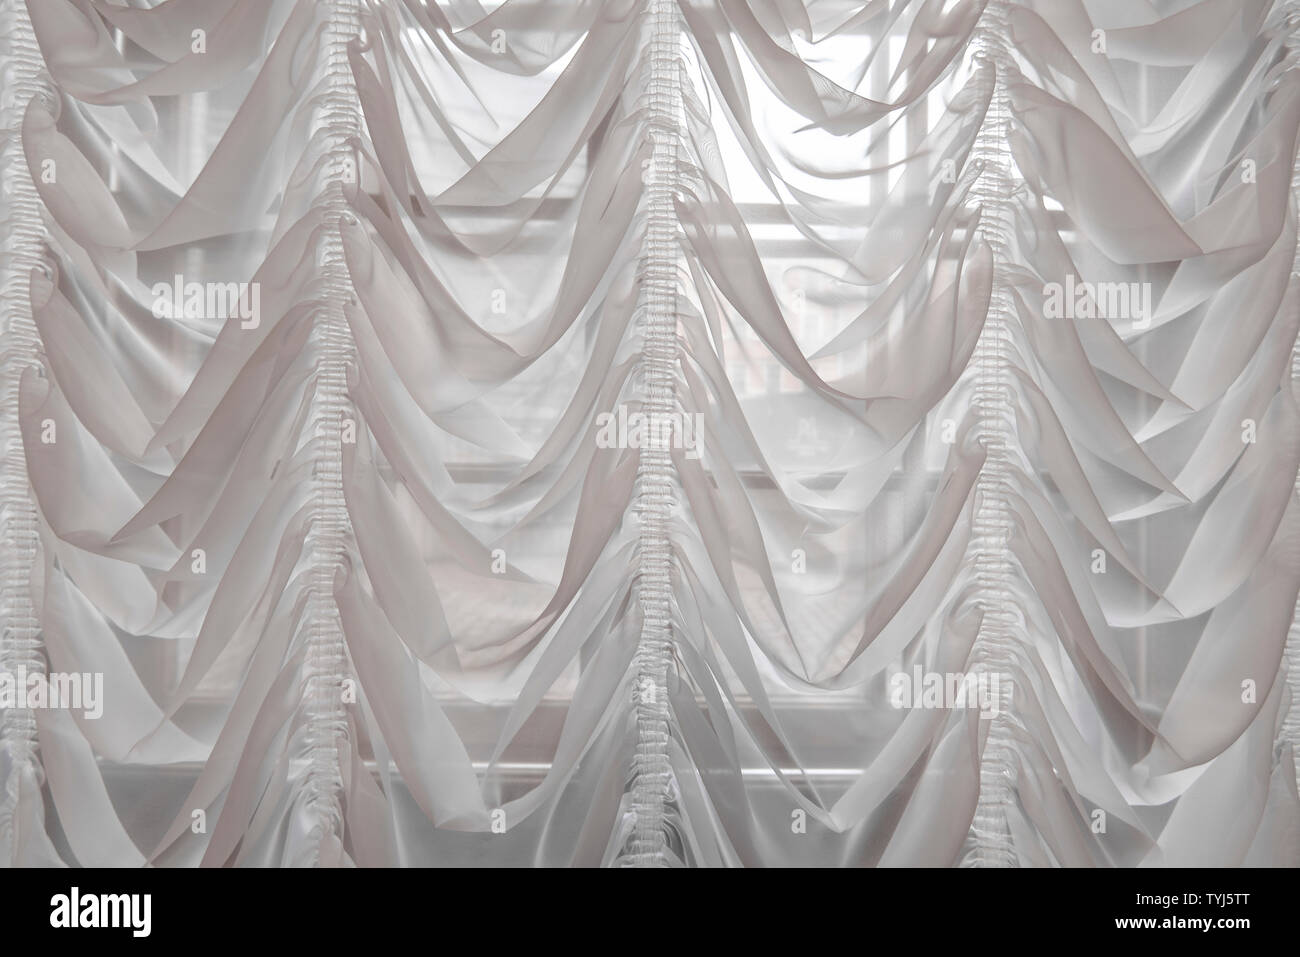 https www alamy com white curtains as interior of luxury hall background or fabric texture image257940616 html